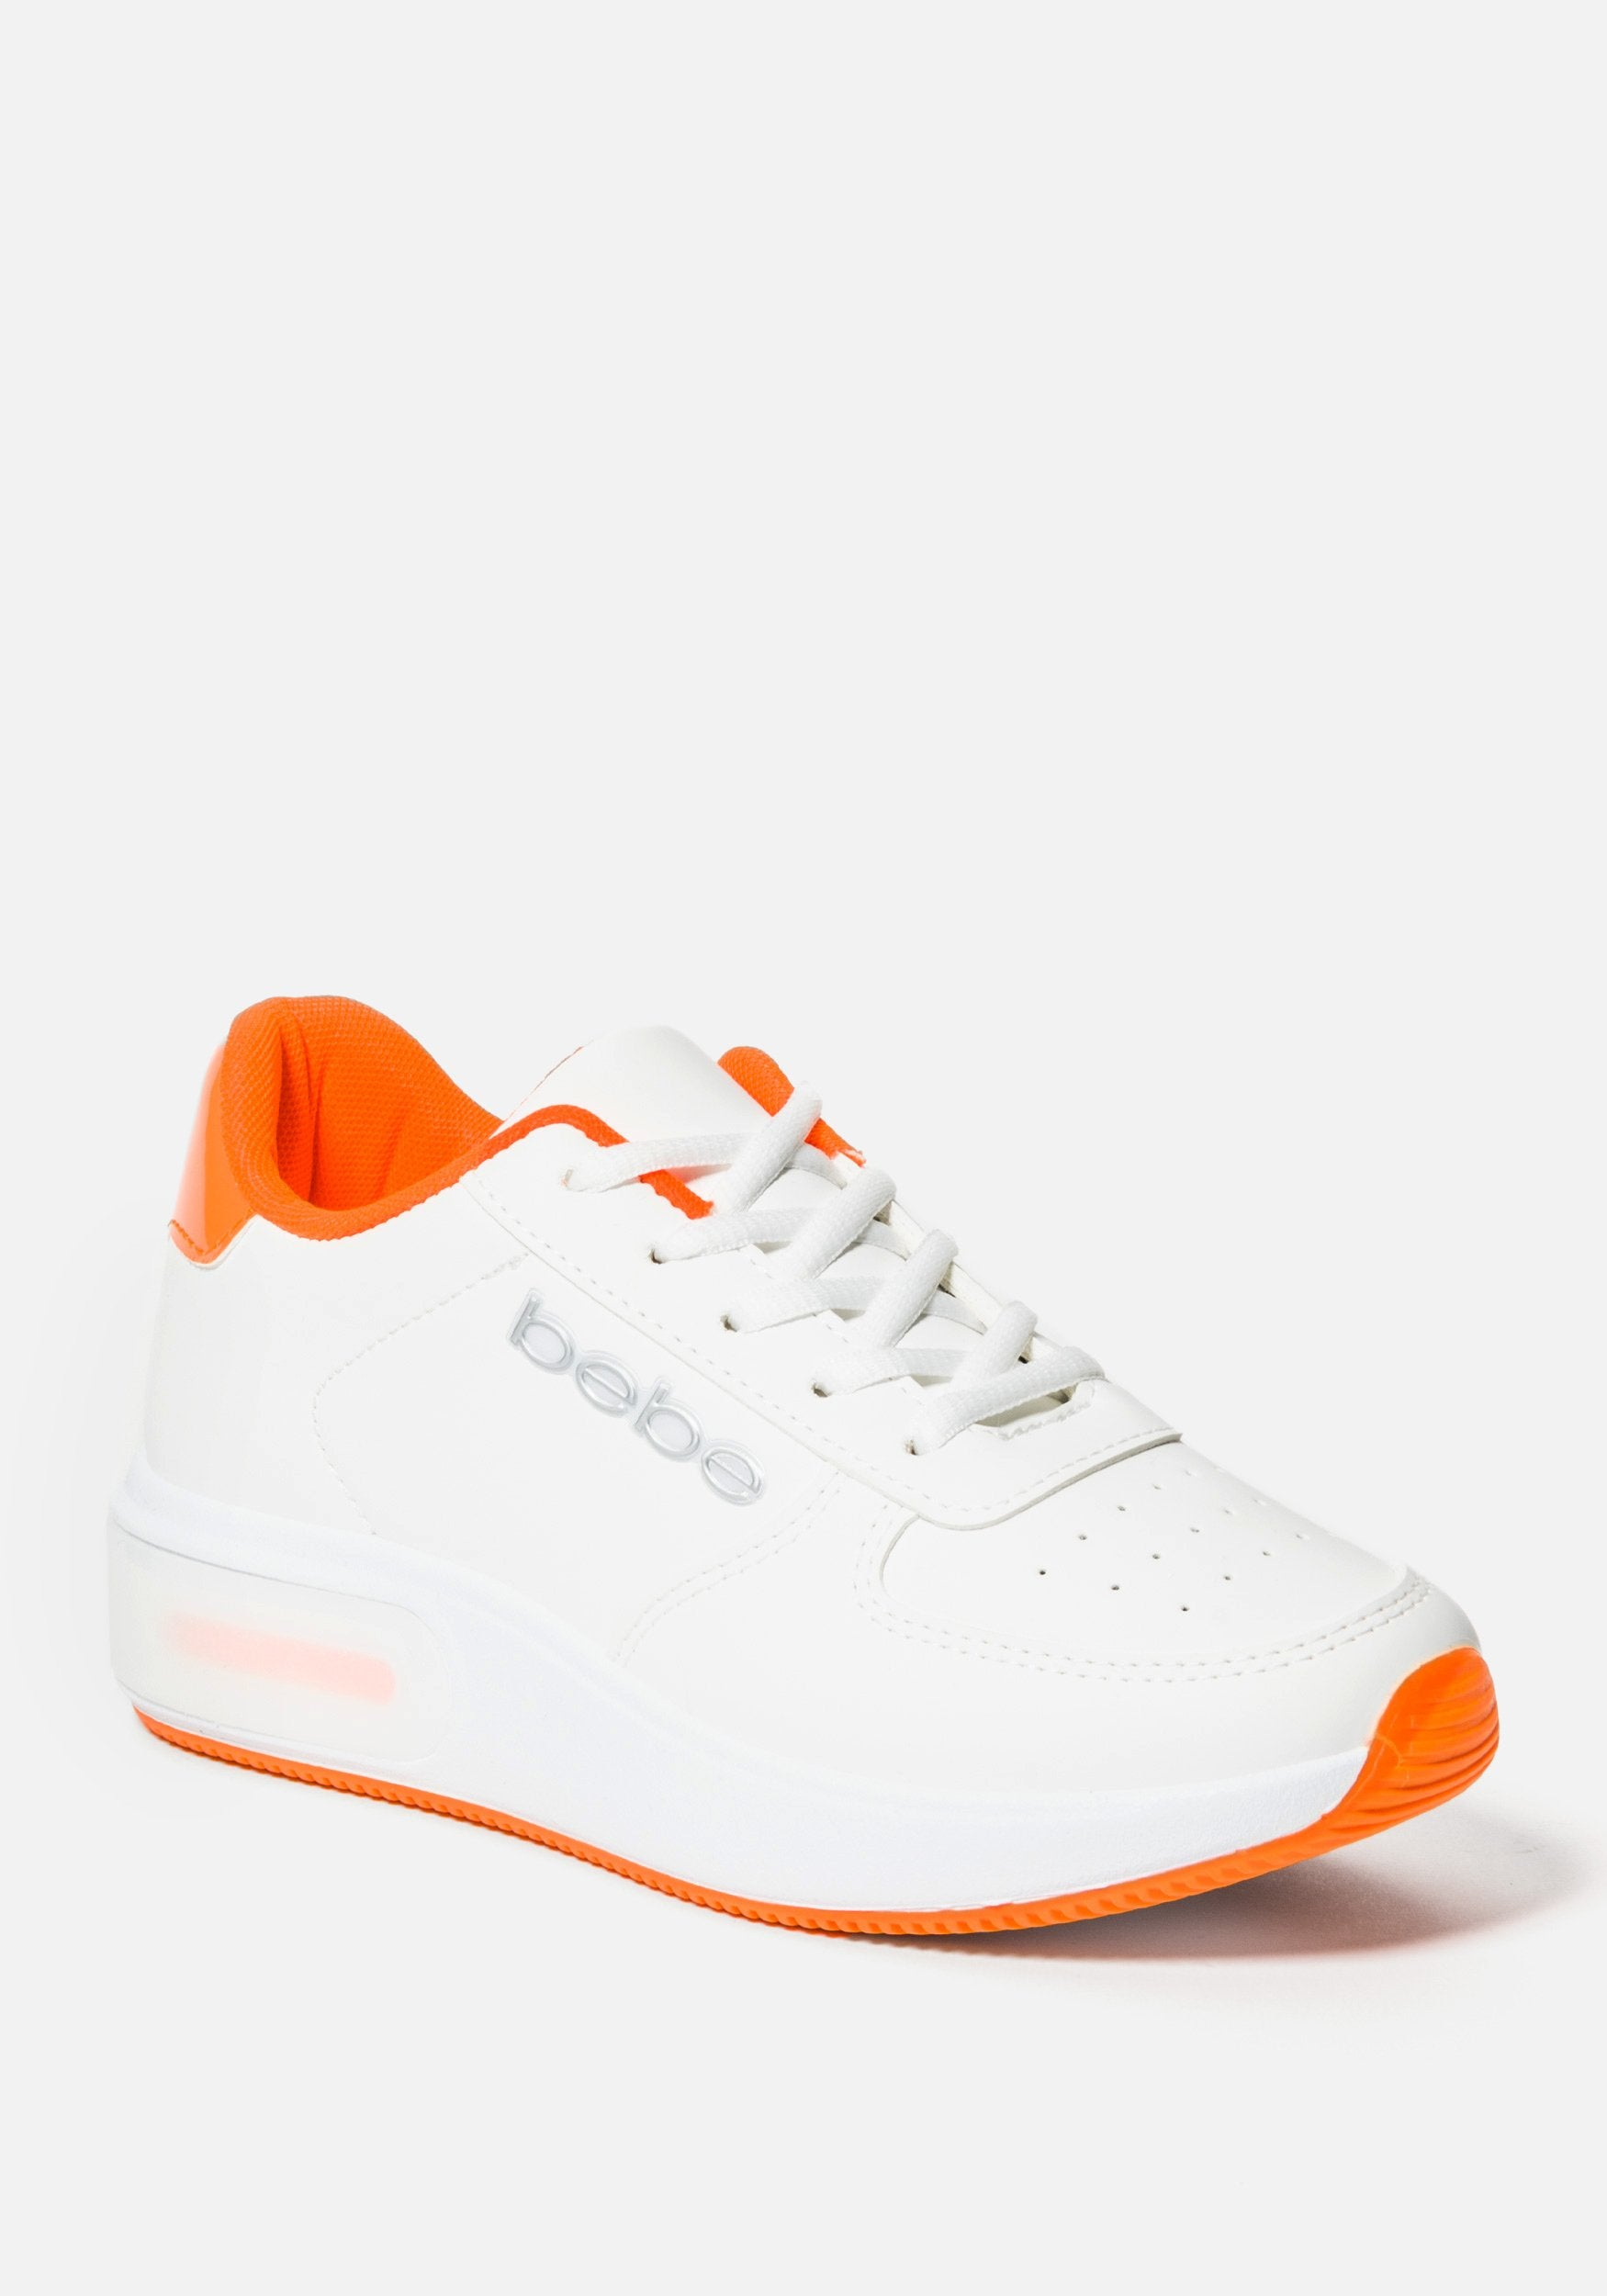 Bebe Women's Lennin Chunky Sneakers, Size 6 in WHITE ORANGE Synthetic